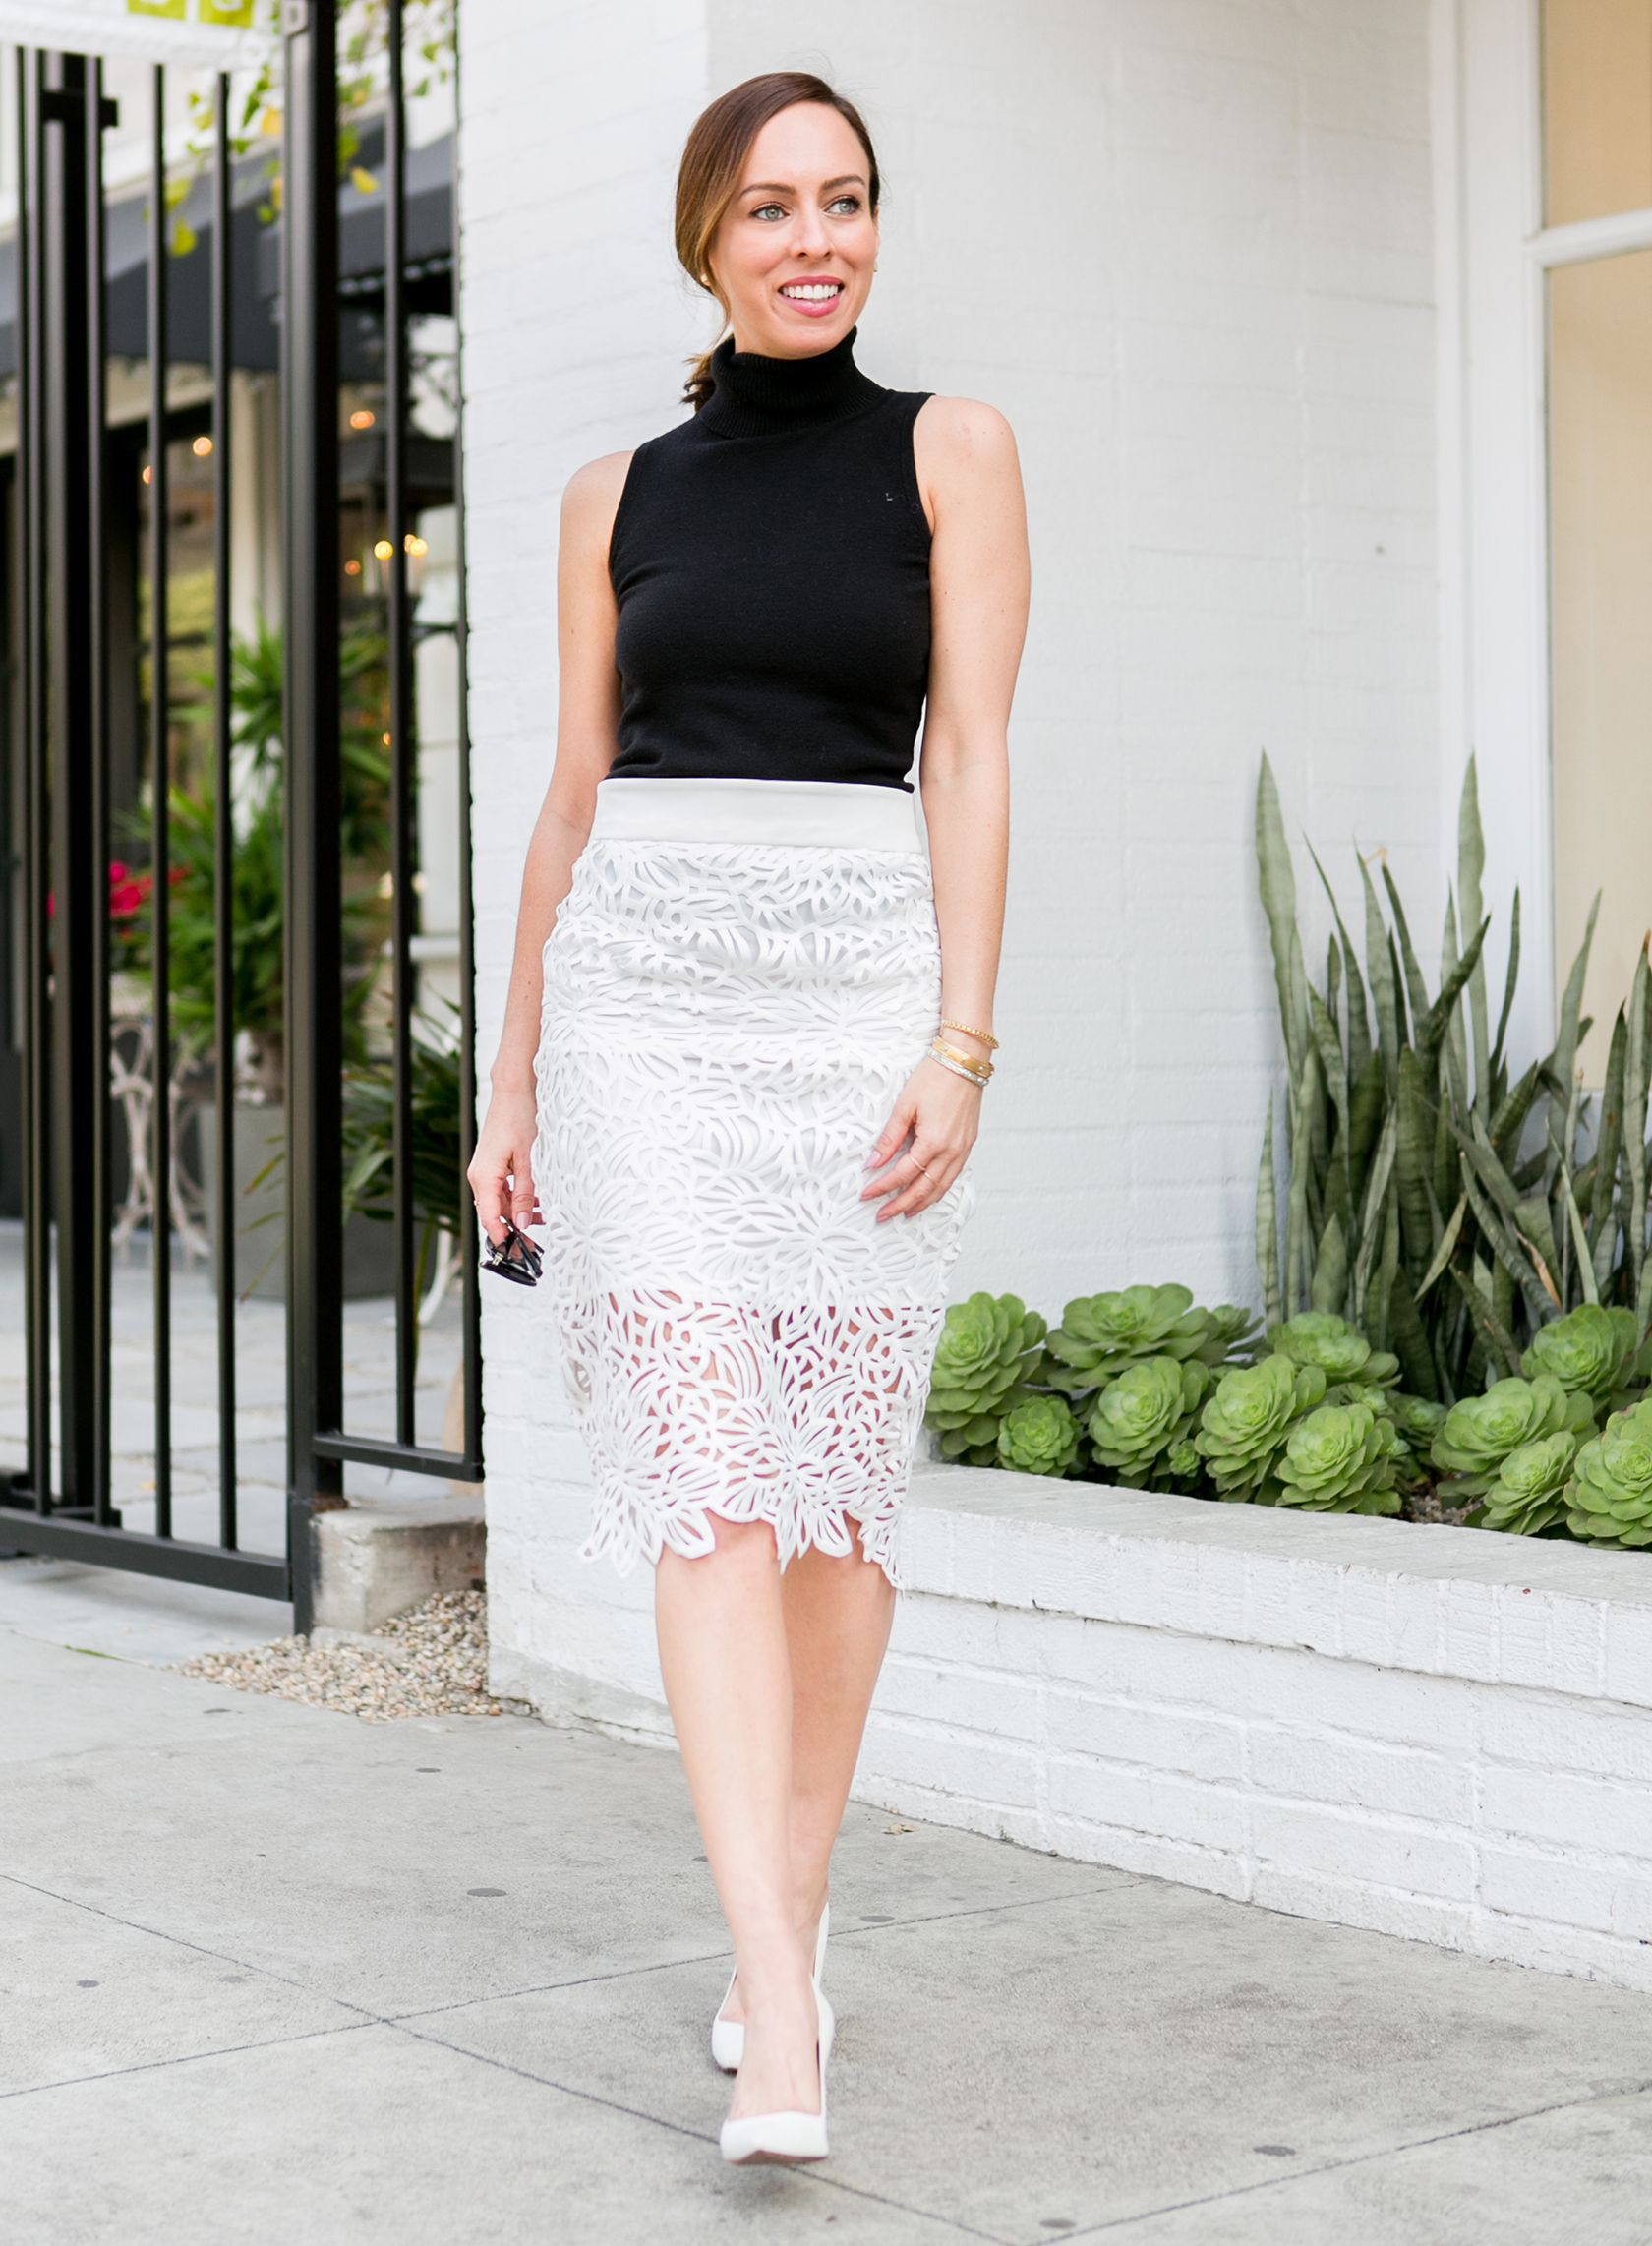 e5f058b78e20 Sydne Style shows classic outfit ideas in a lace pencil skirt and  sleeveless turtleneck #lace #springoutfits #white #blackandwhite #turtleneck